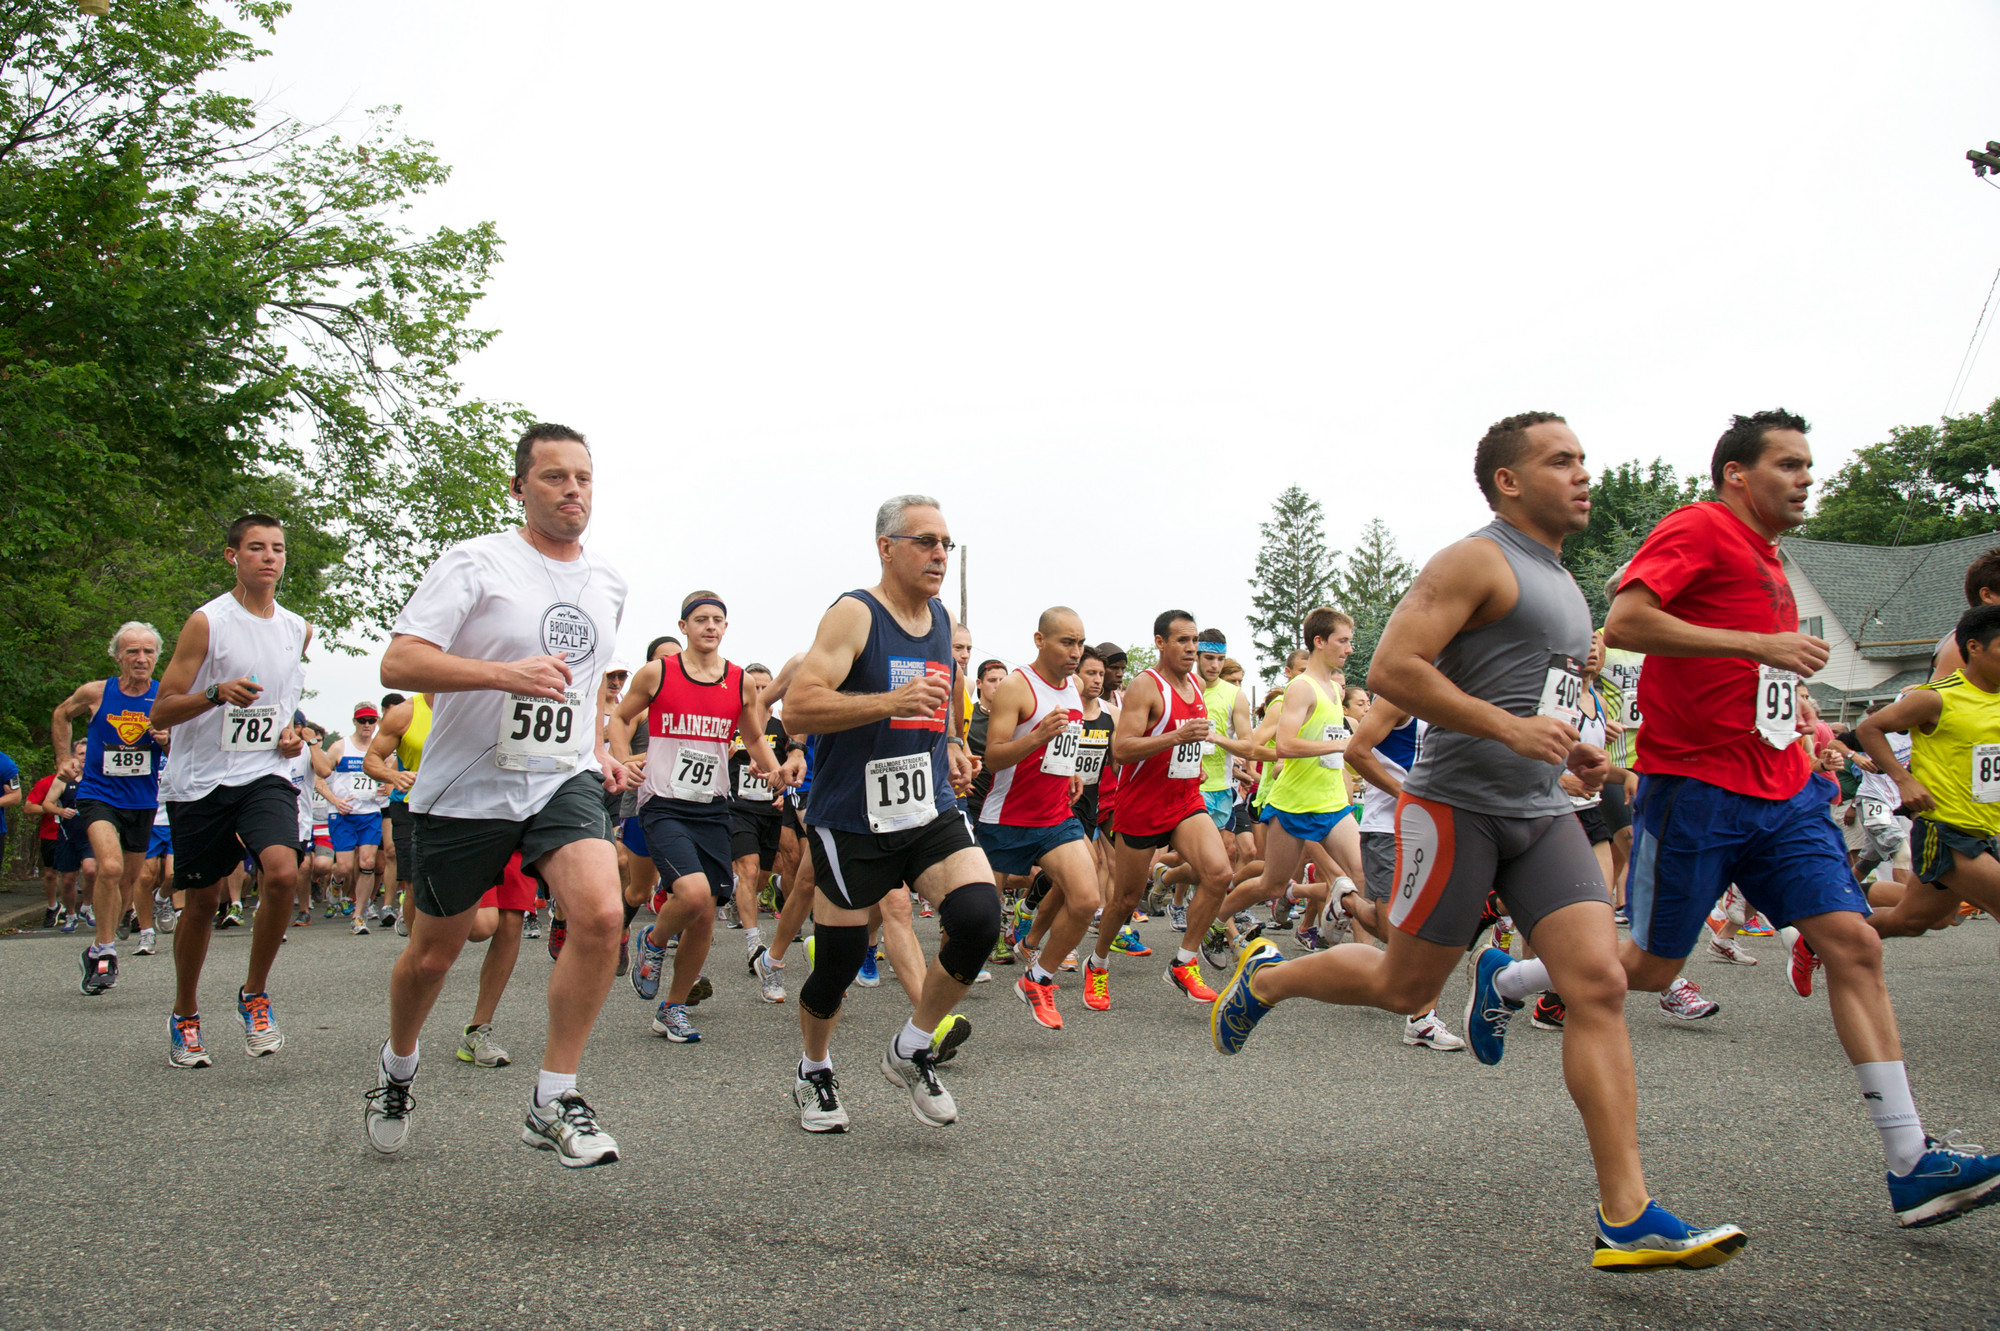 More than 700 people participated in the Bellmore Striders' annual Independence Day Run on the Fourth of July.